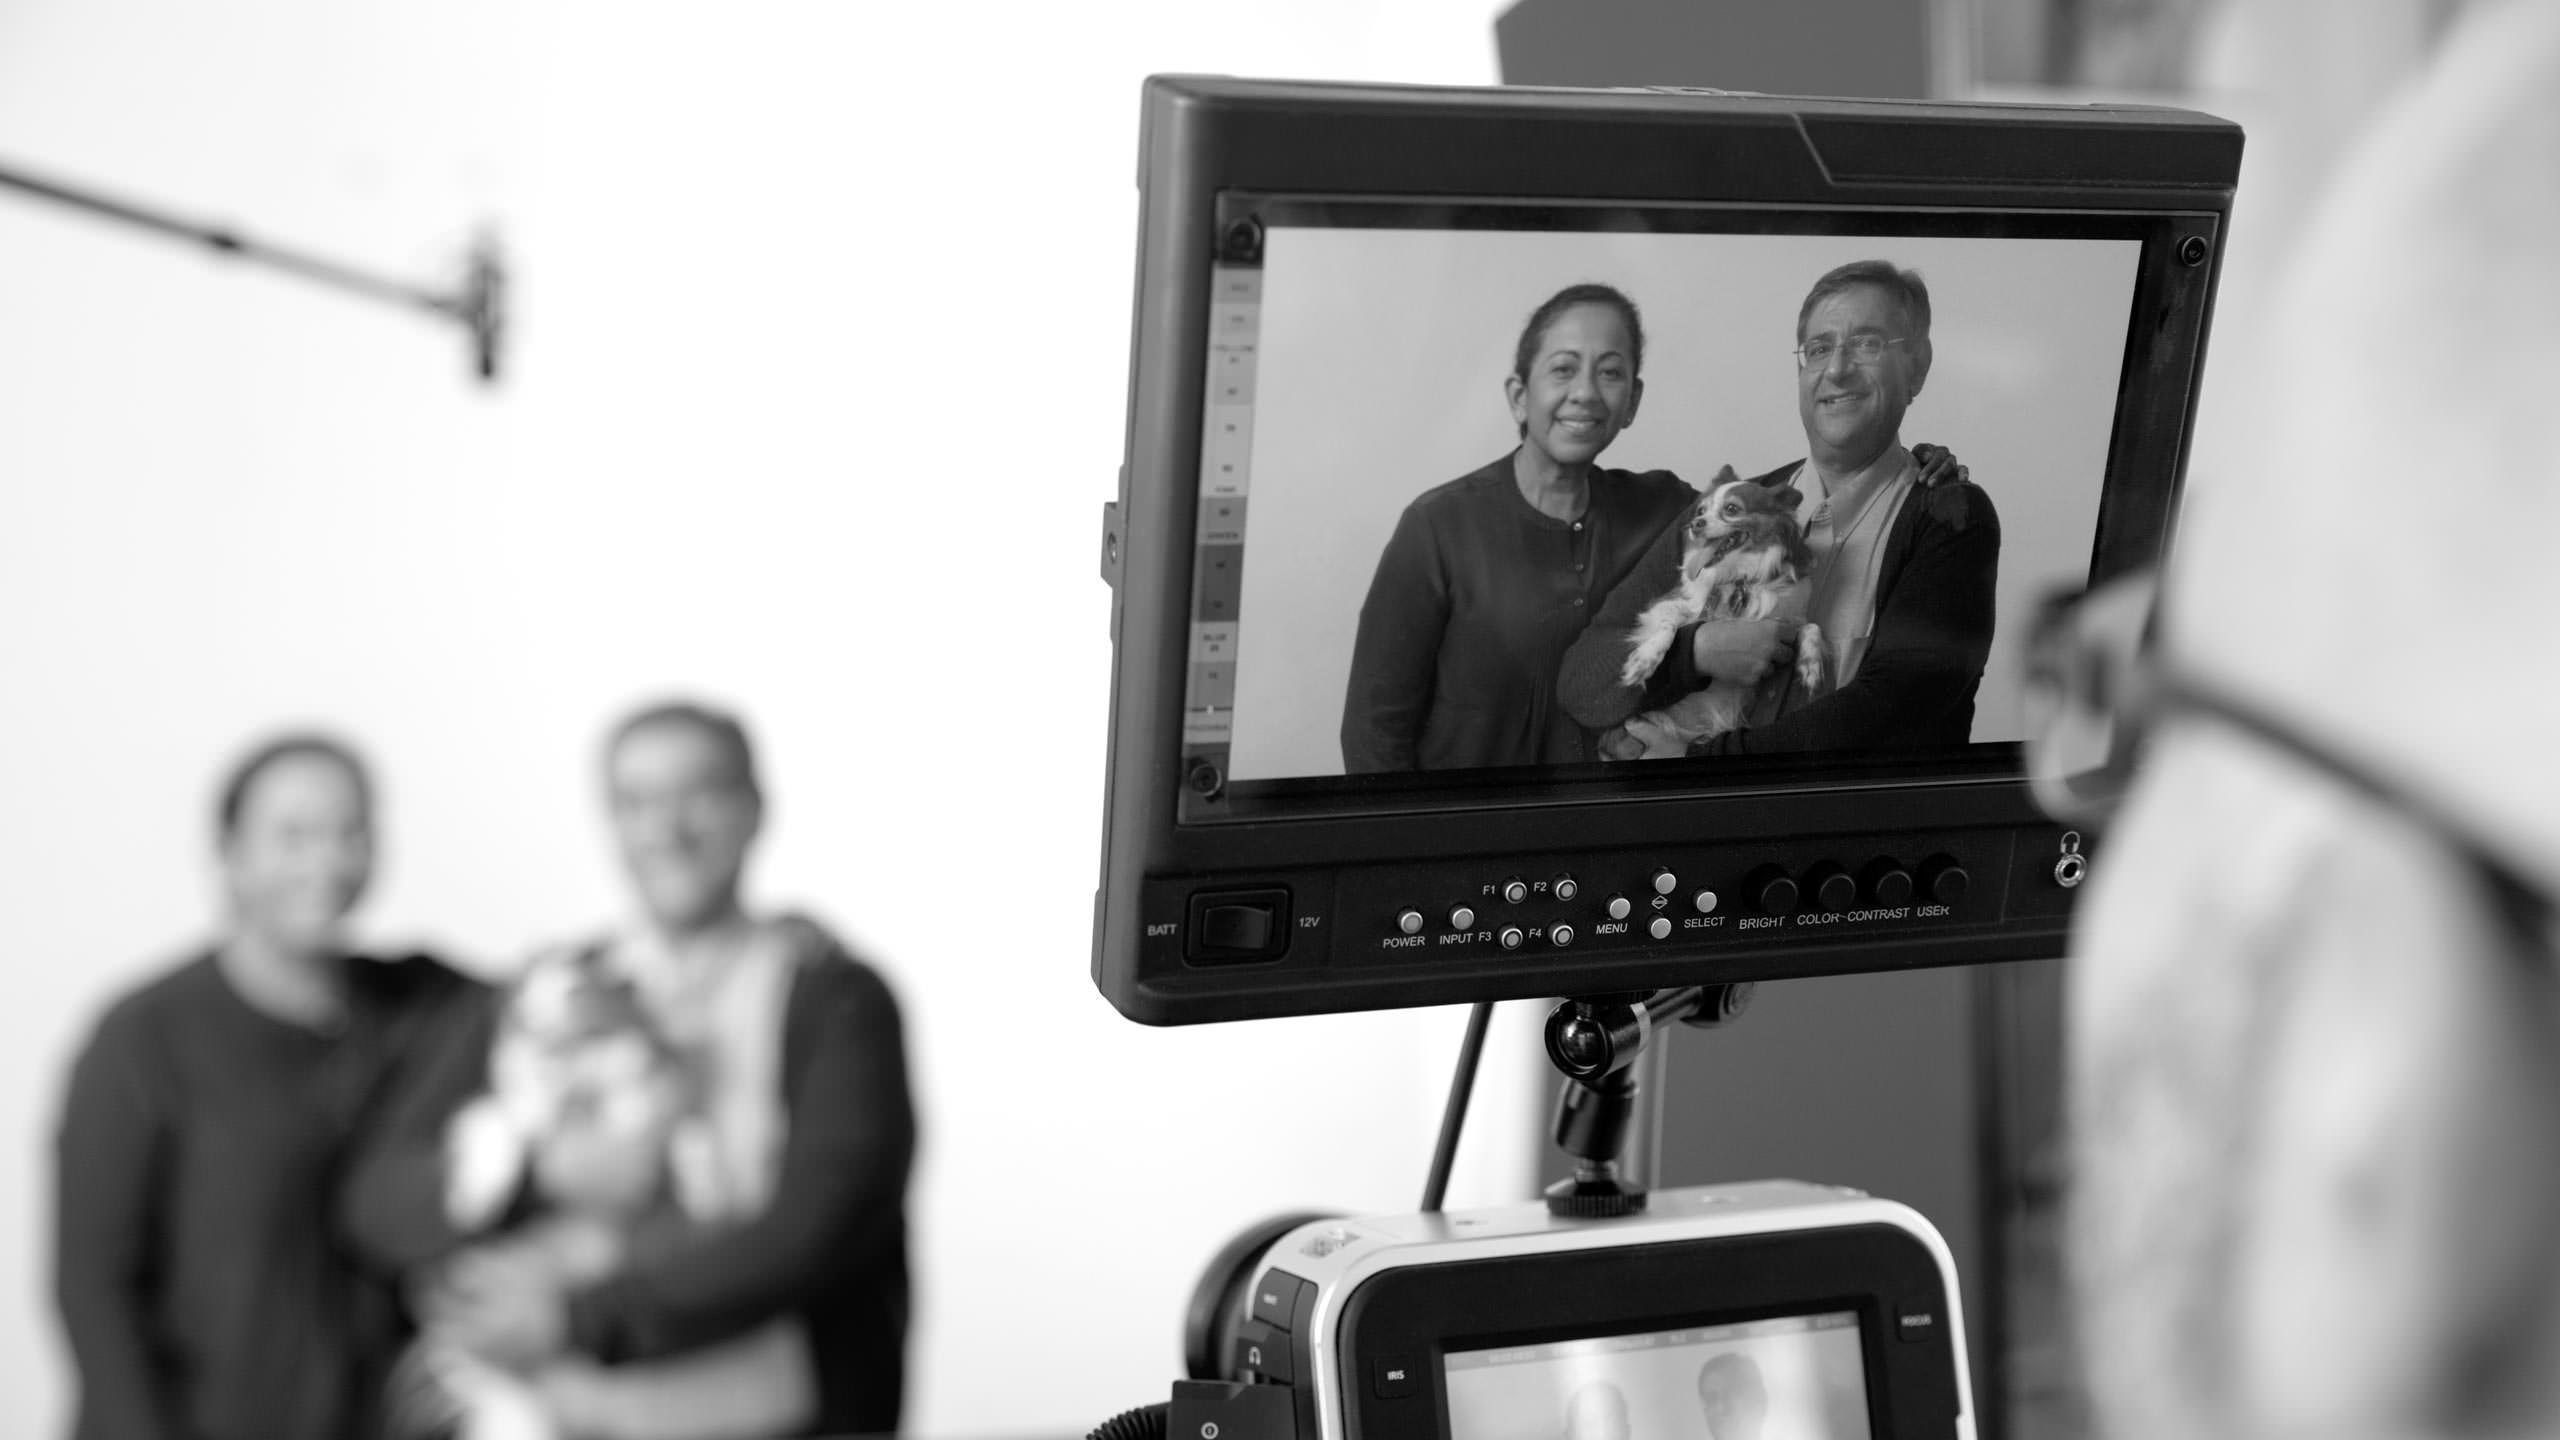 Gilead Annual Report 2014 Photography - Behind the scenes shooting